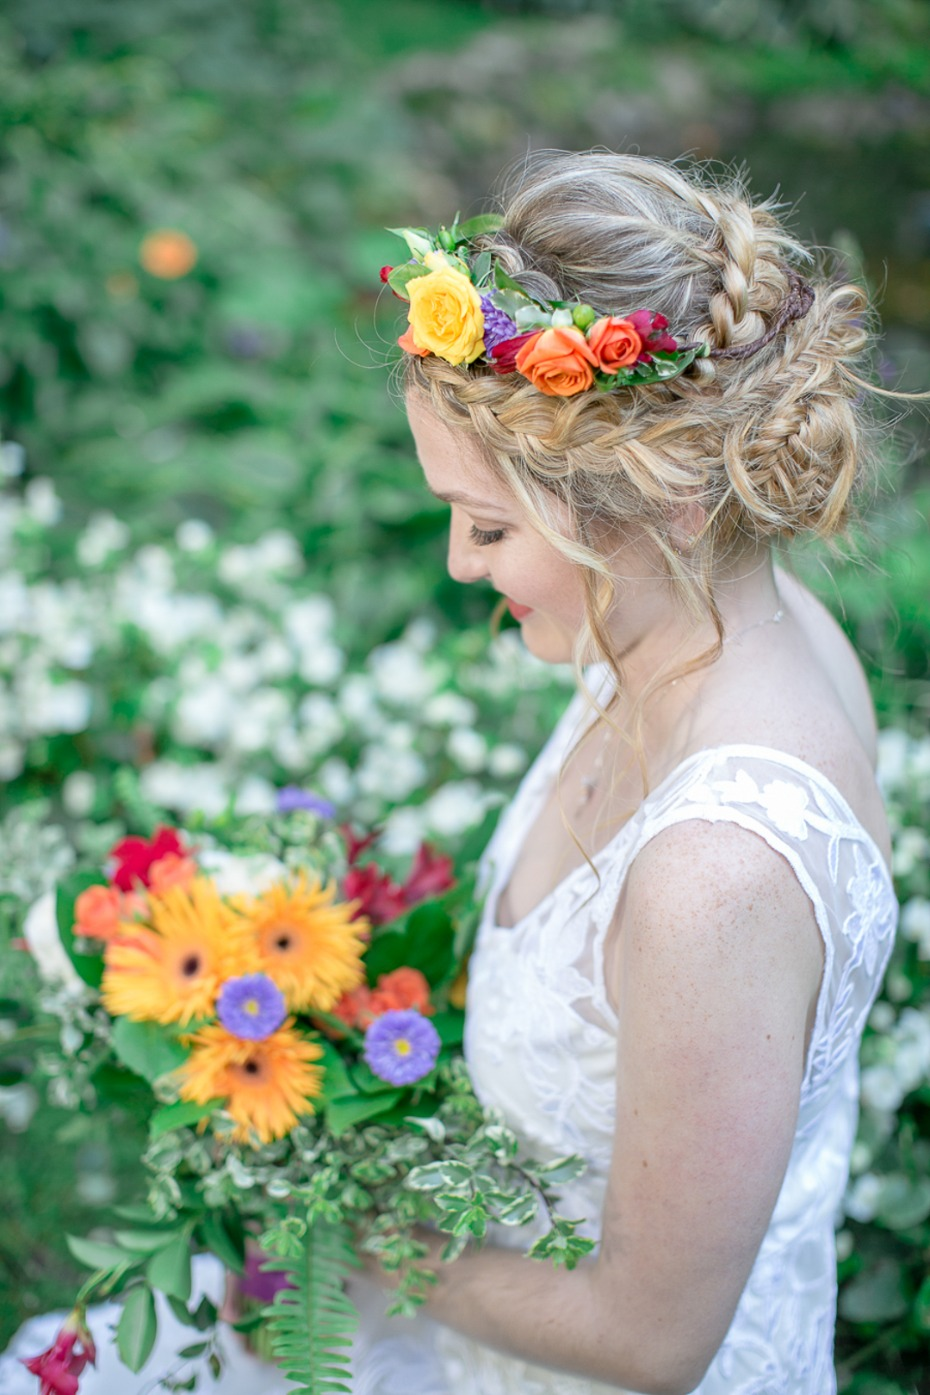 bride and happy summer bridal bouquet and halo